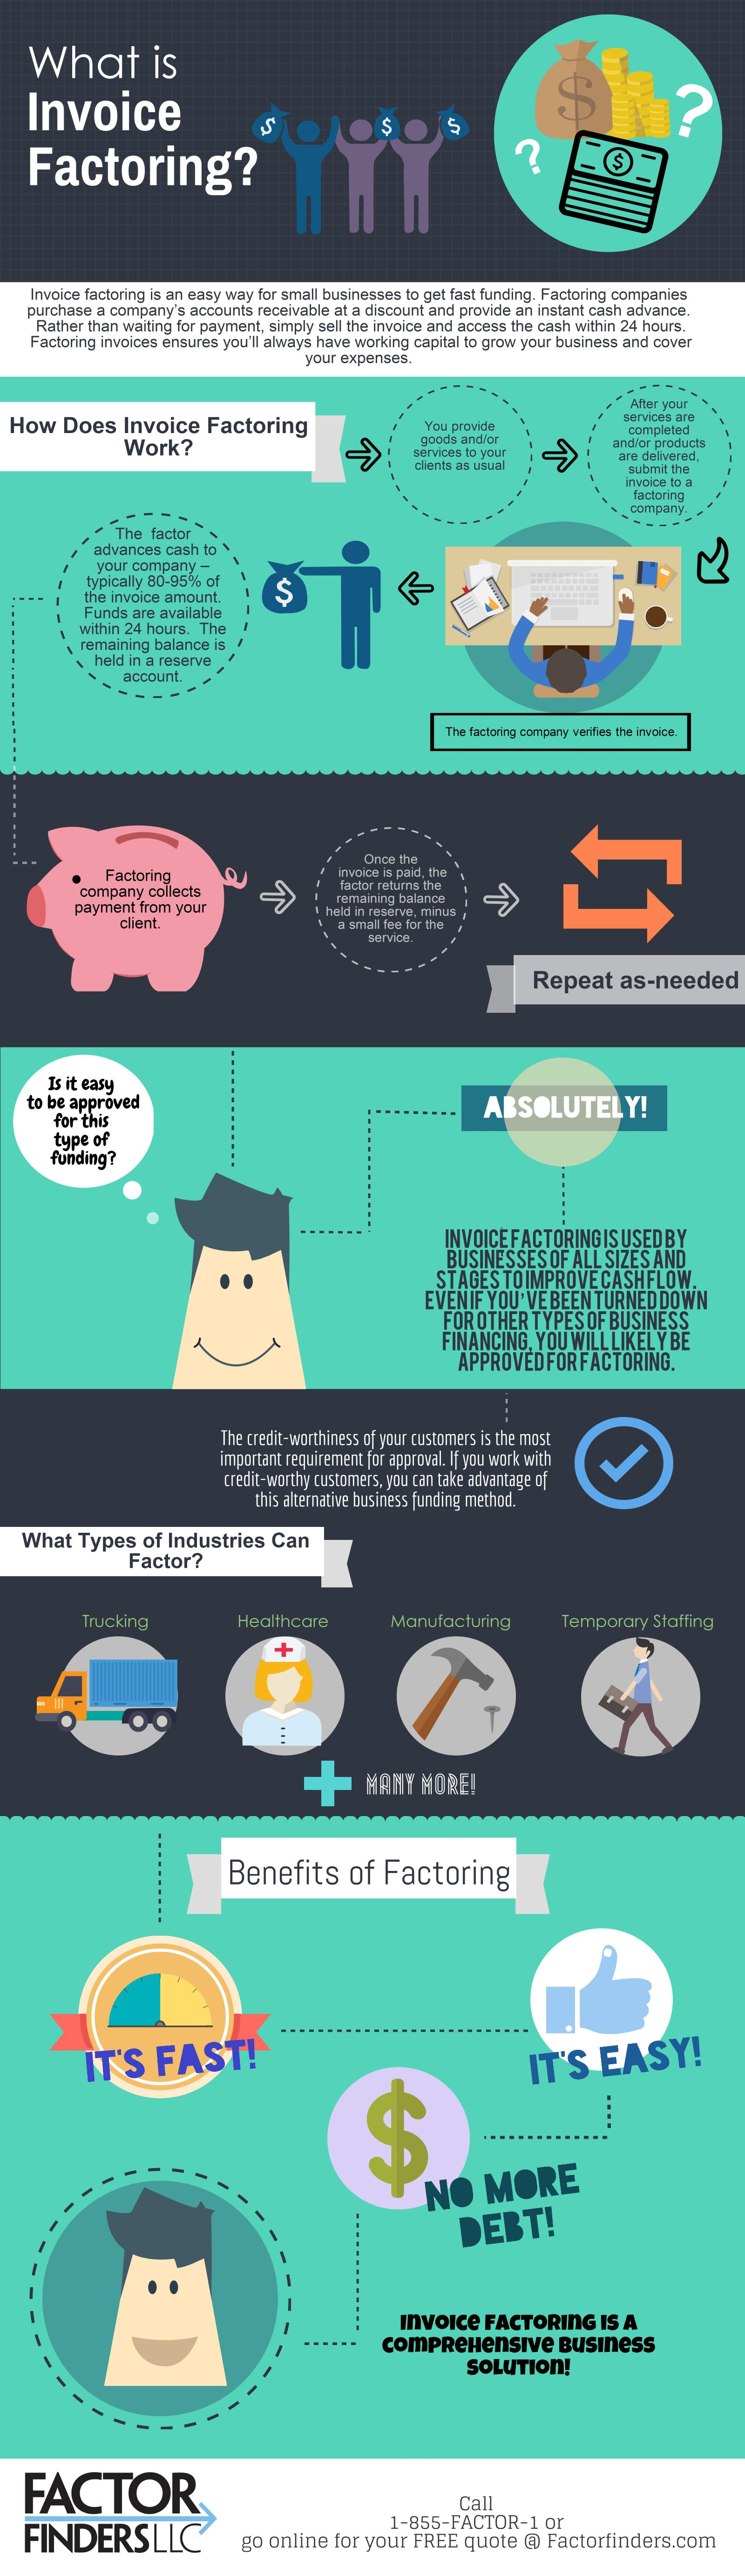 What Is Invoice Factoring? – Infographic Portal